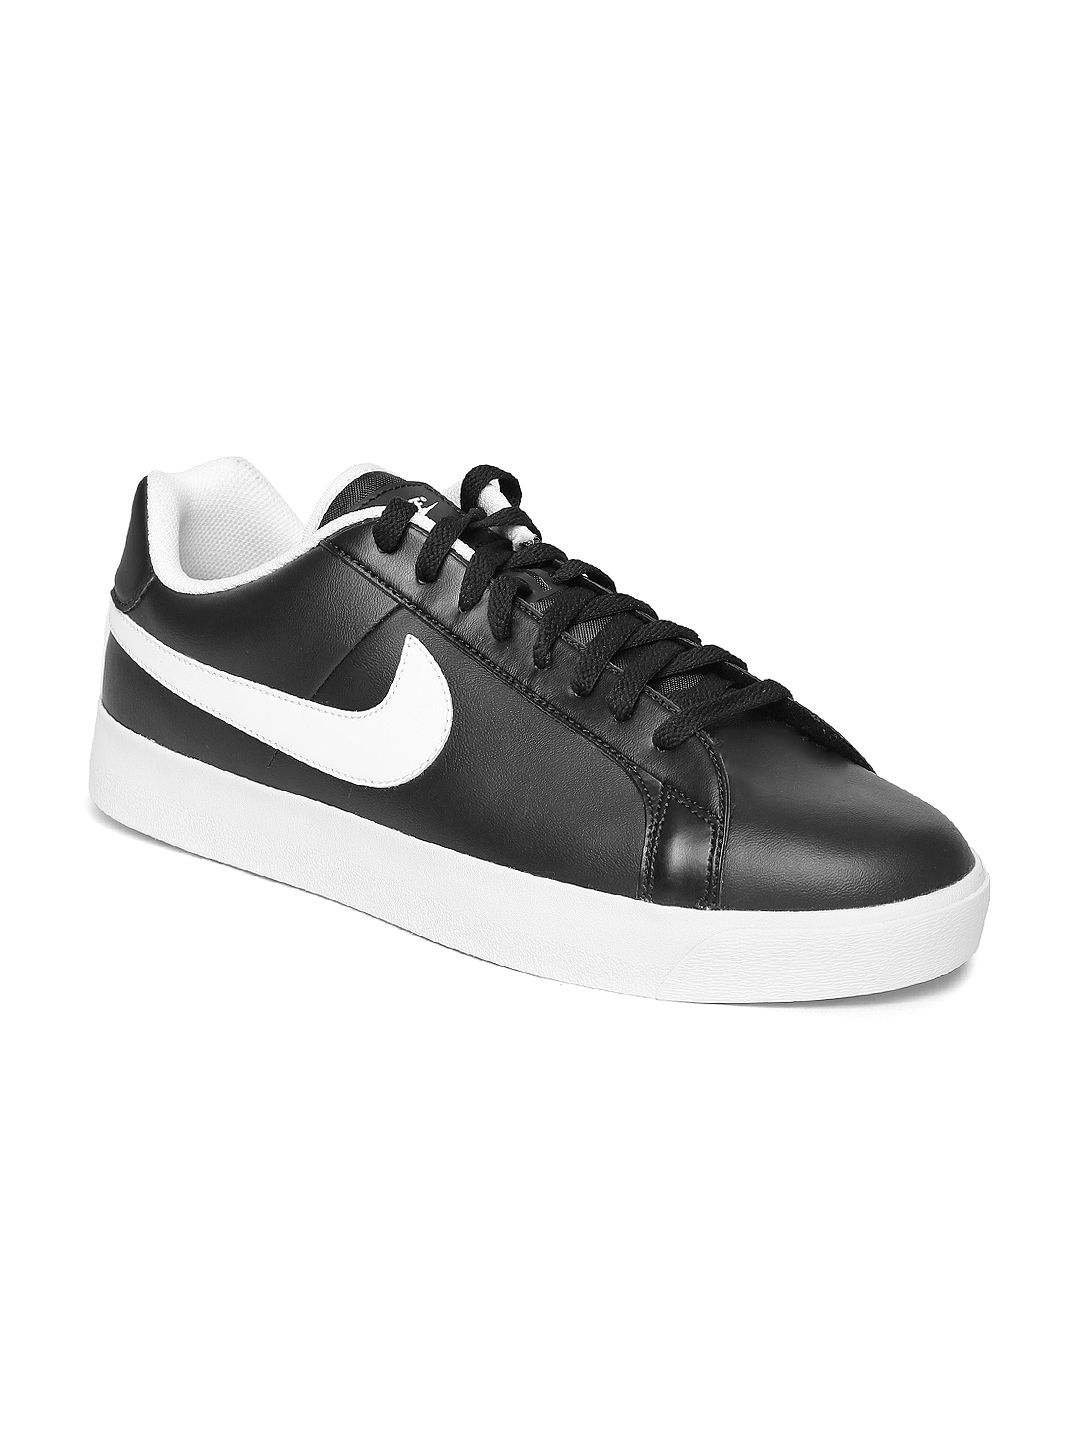 447169992d87 Buy Nike Men Black Court Royale LW Leather Sneakers - Casual Shoes ...